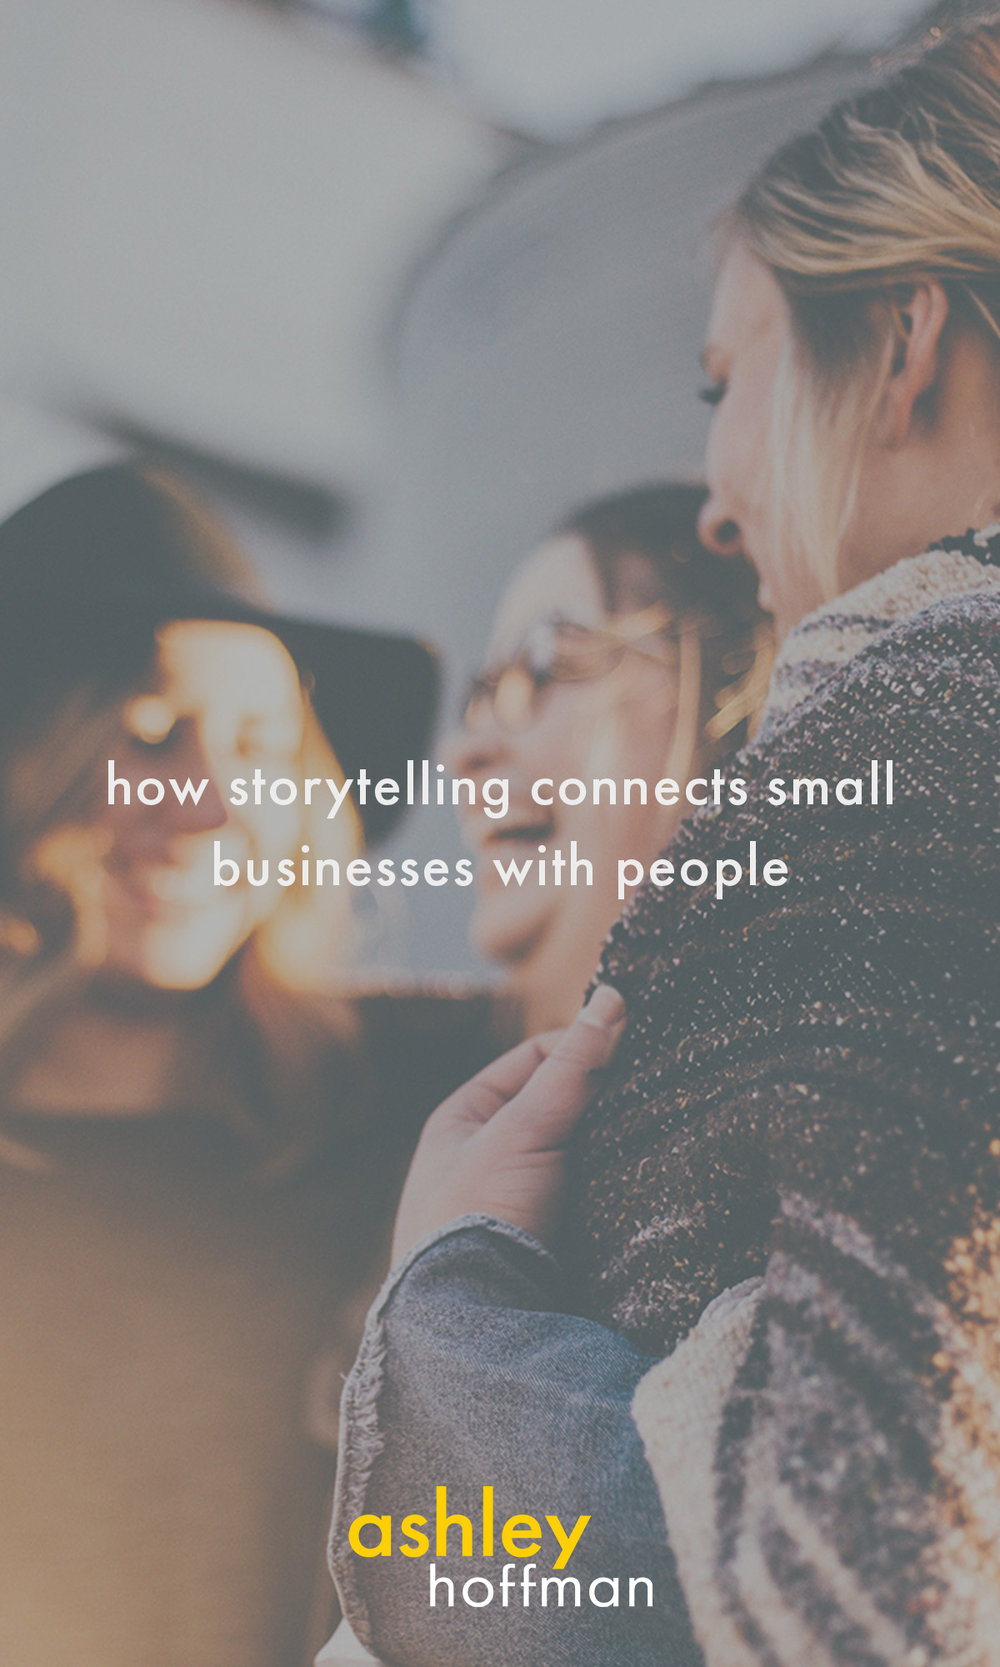 how-storytelling-connects-small-businesses-with-people-pinterest.jpg